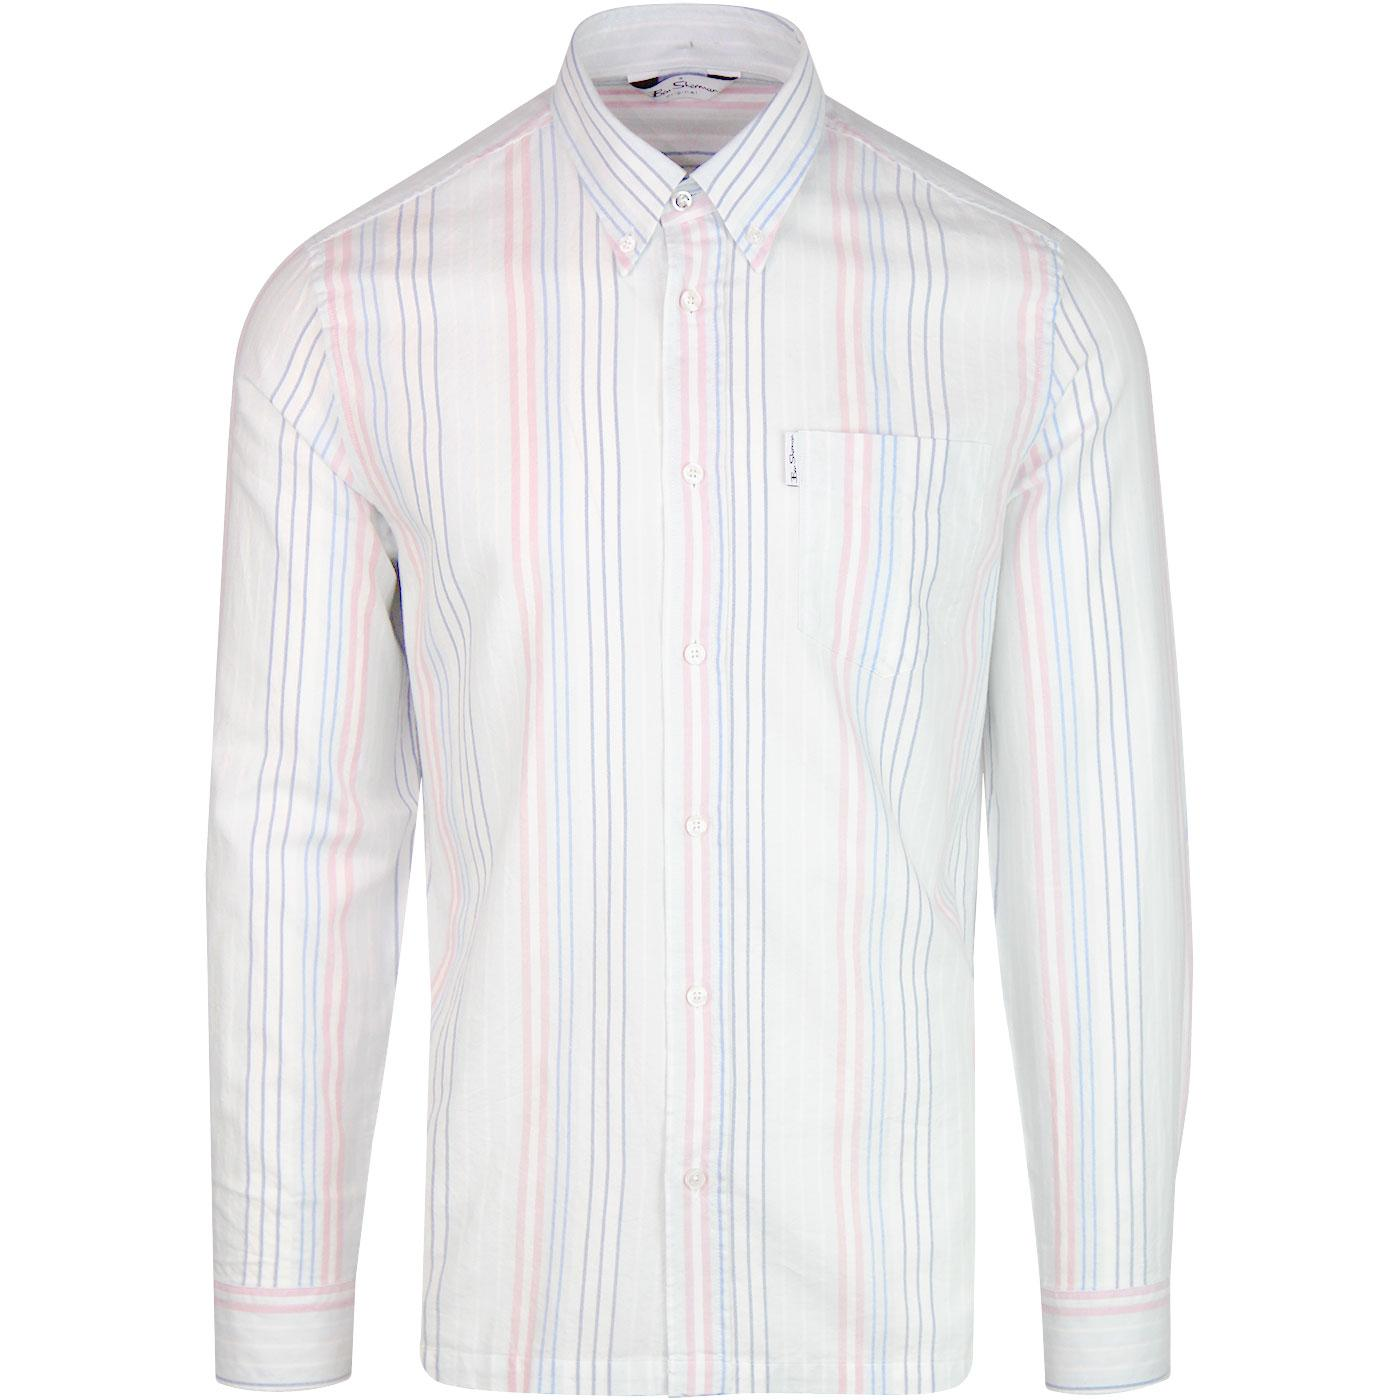 BEN SHERMAN Archive Yale L/S Striped shirt (PB)